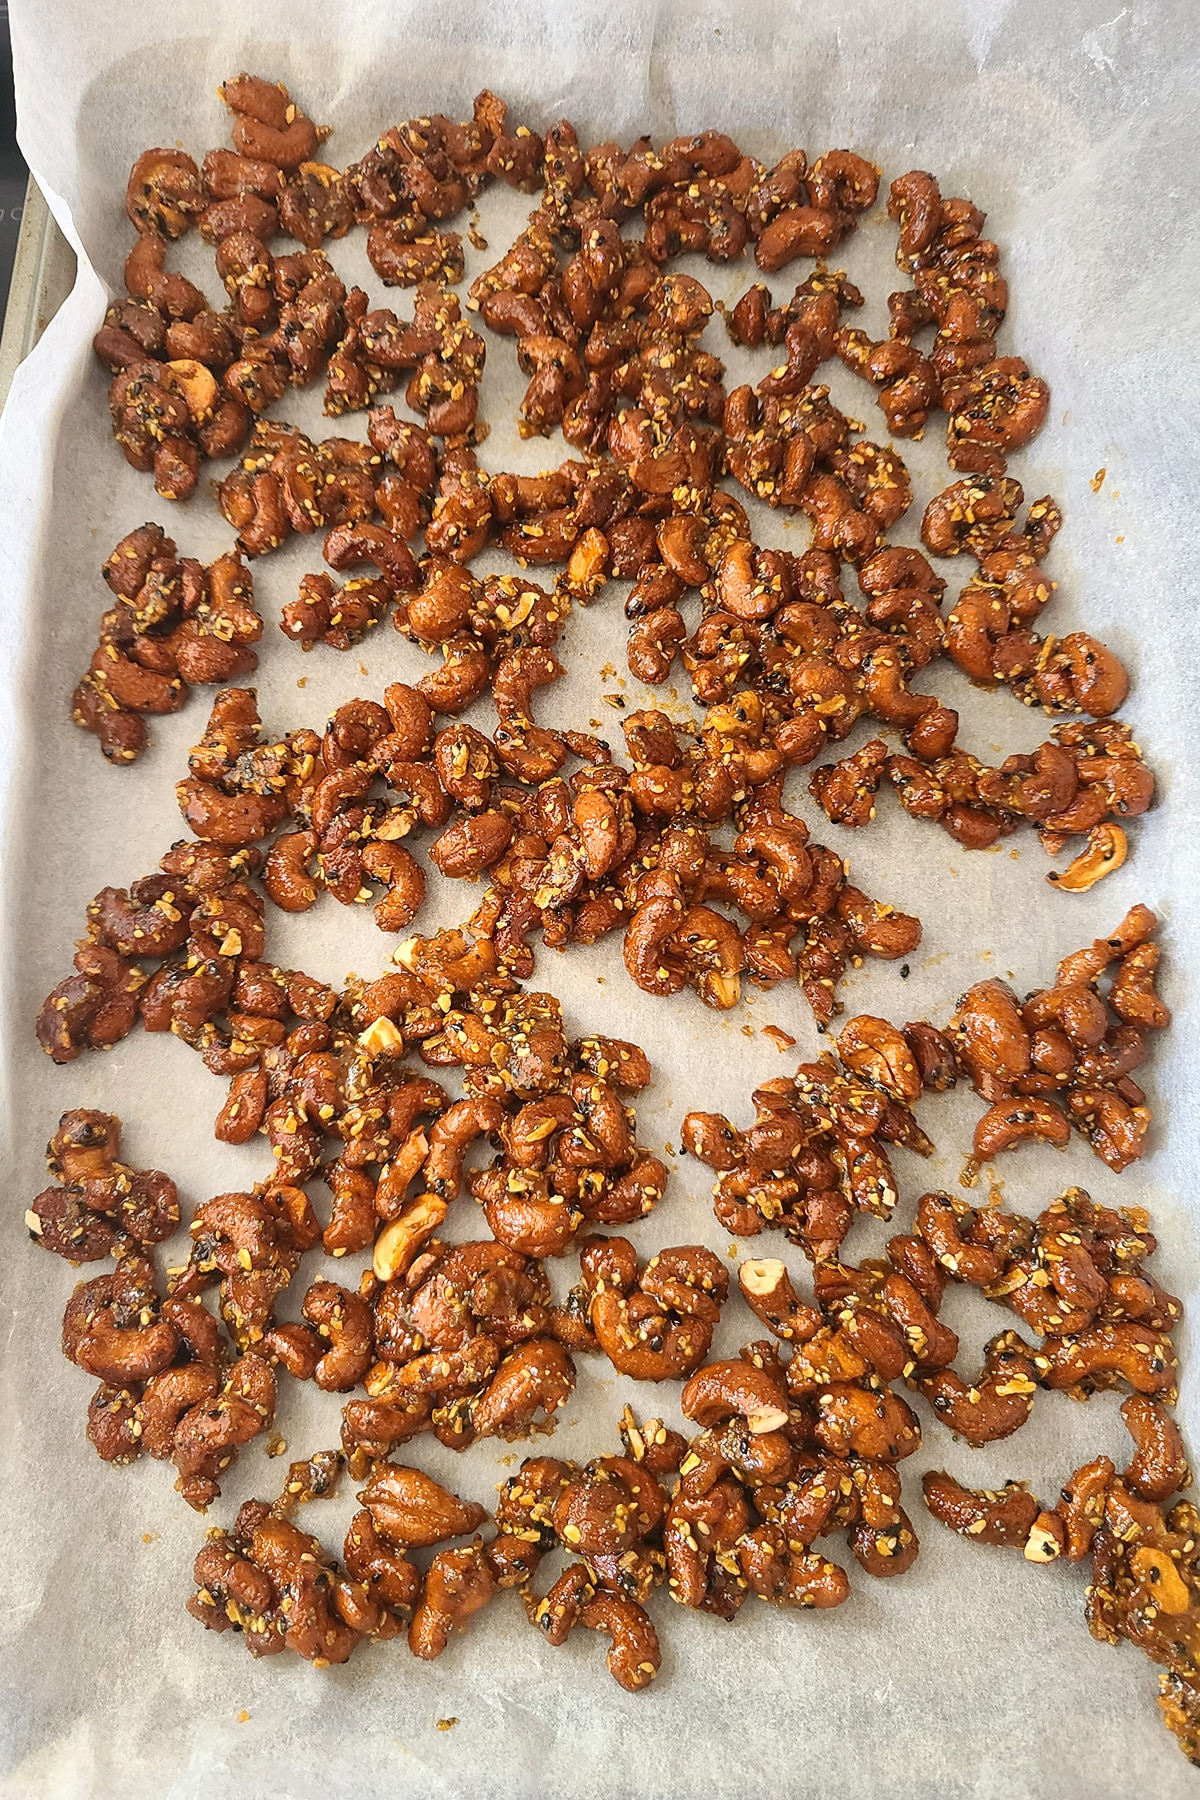 Everything Seasoned Honey Glazed cashews, spread out on a parchment lined pan.